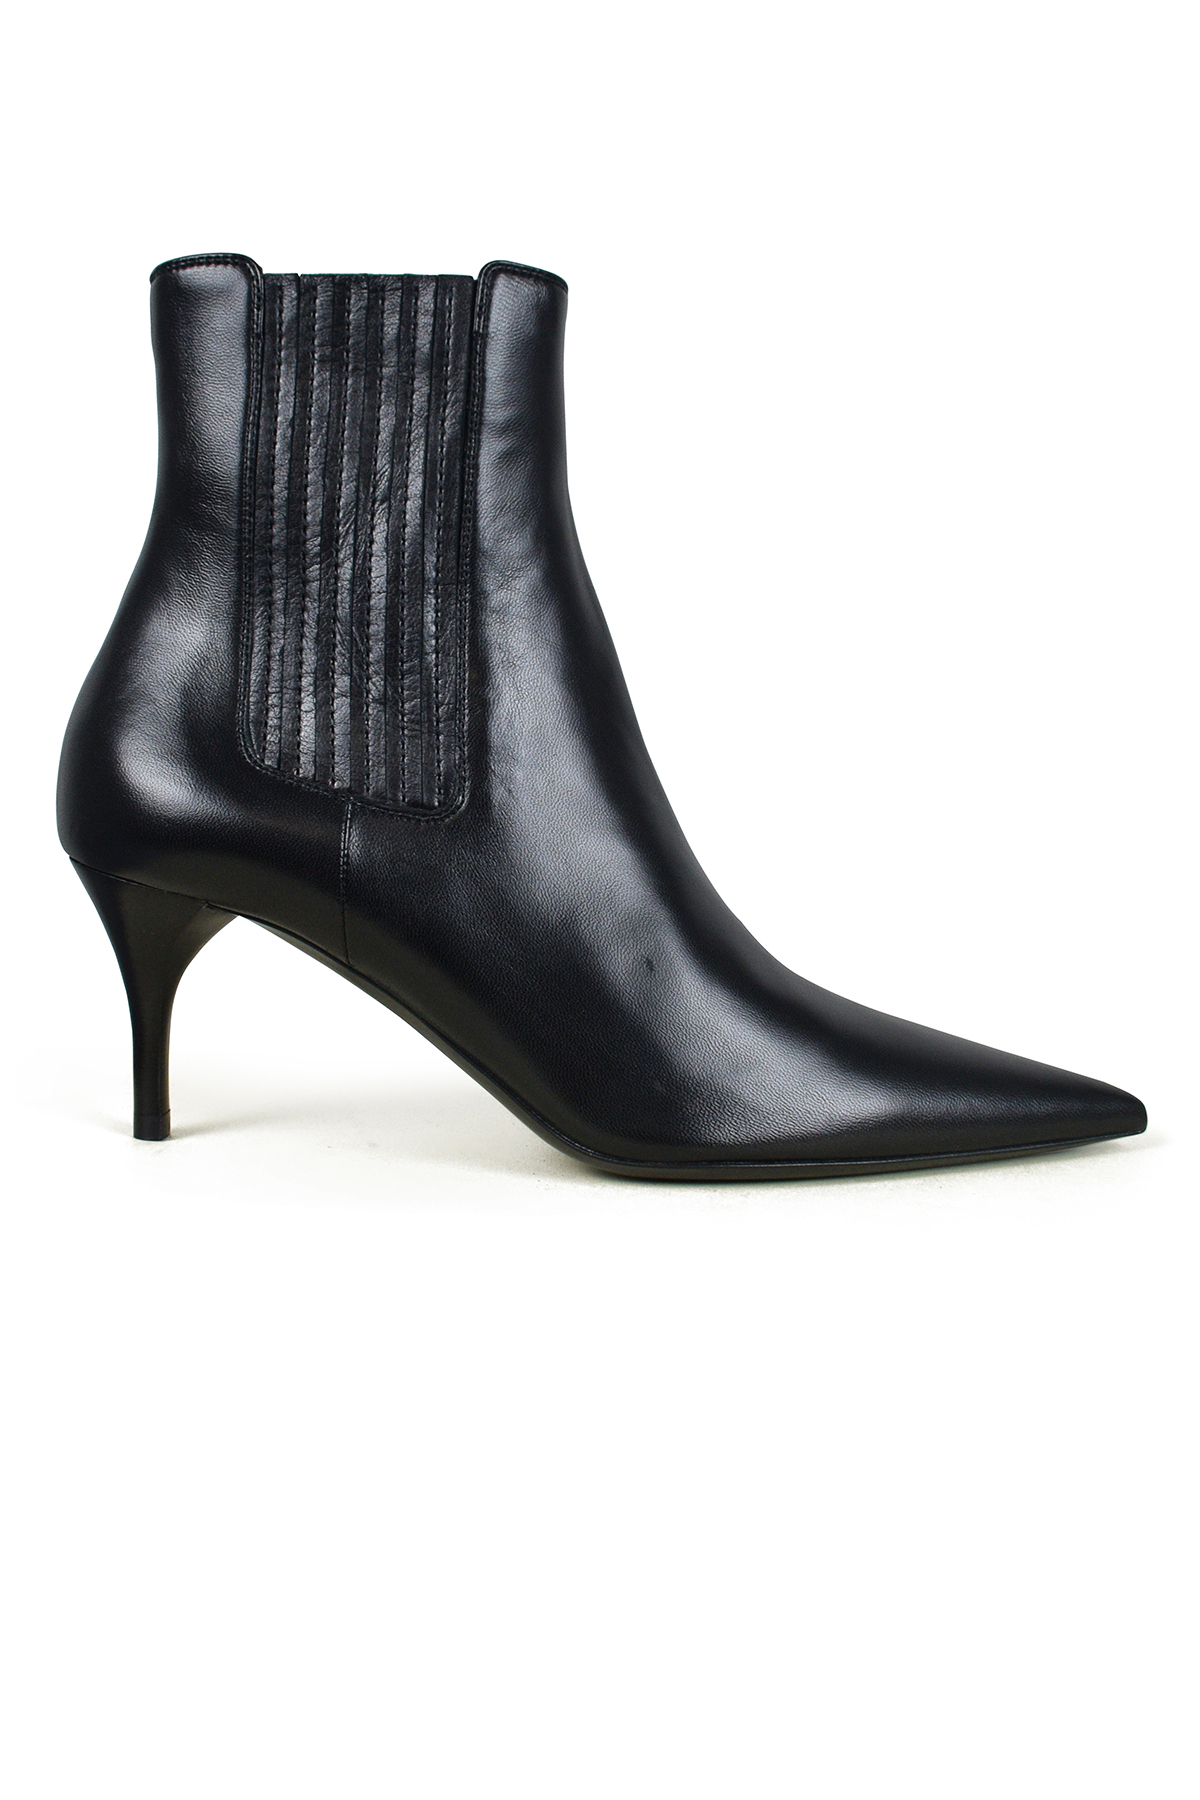 ysl shoes boots